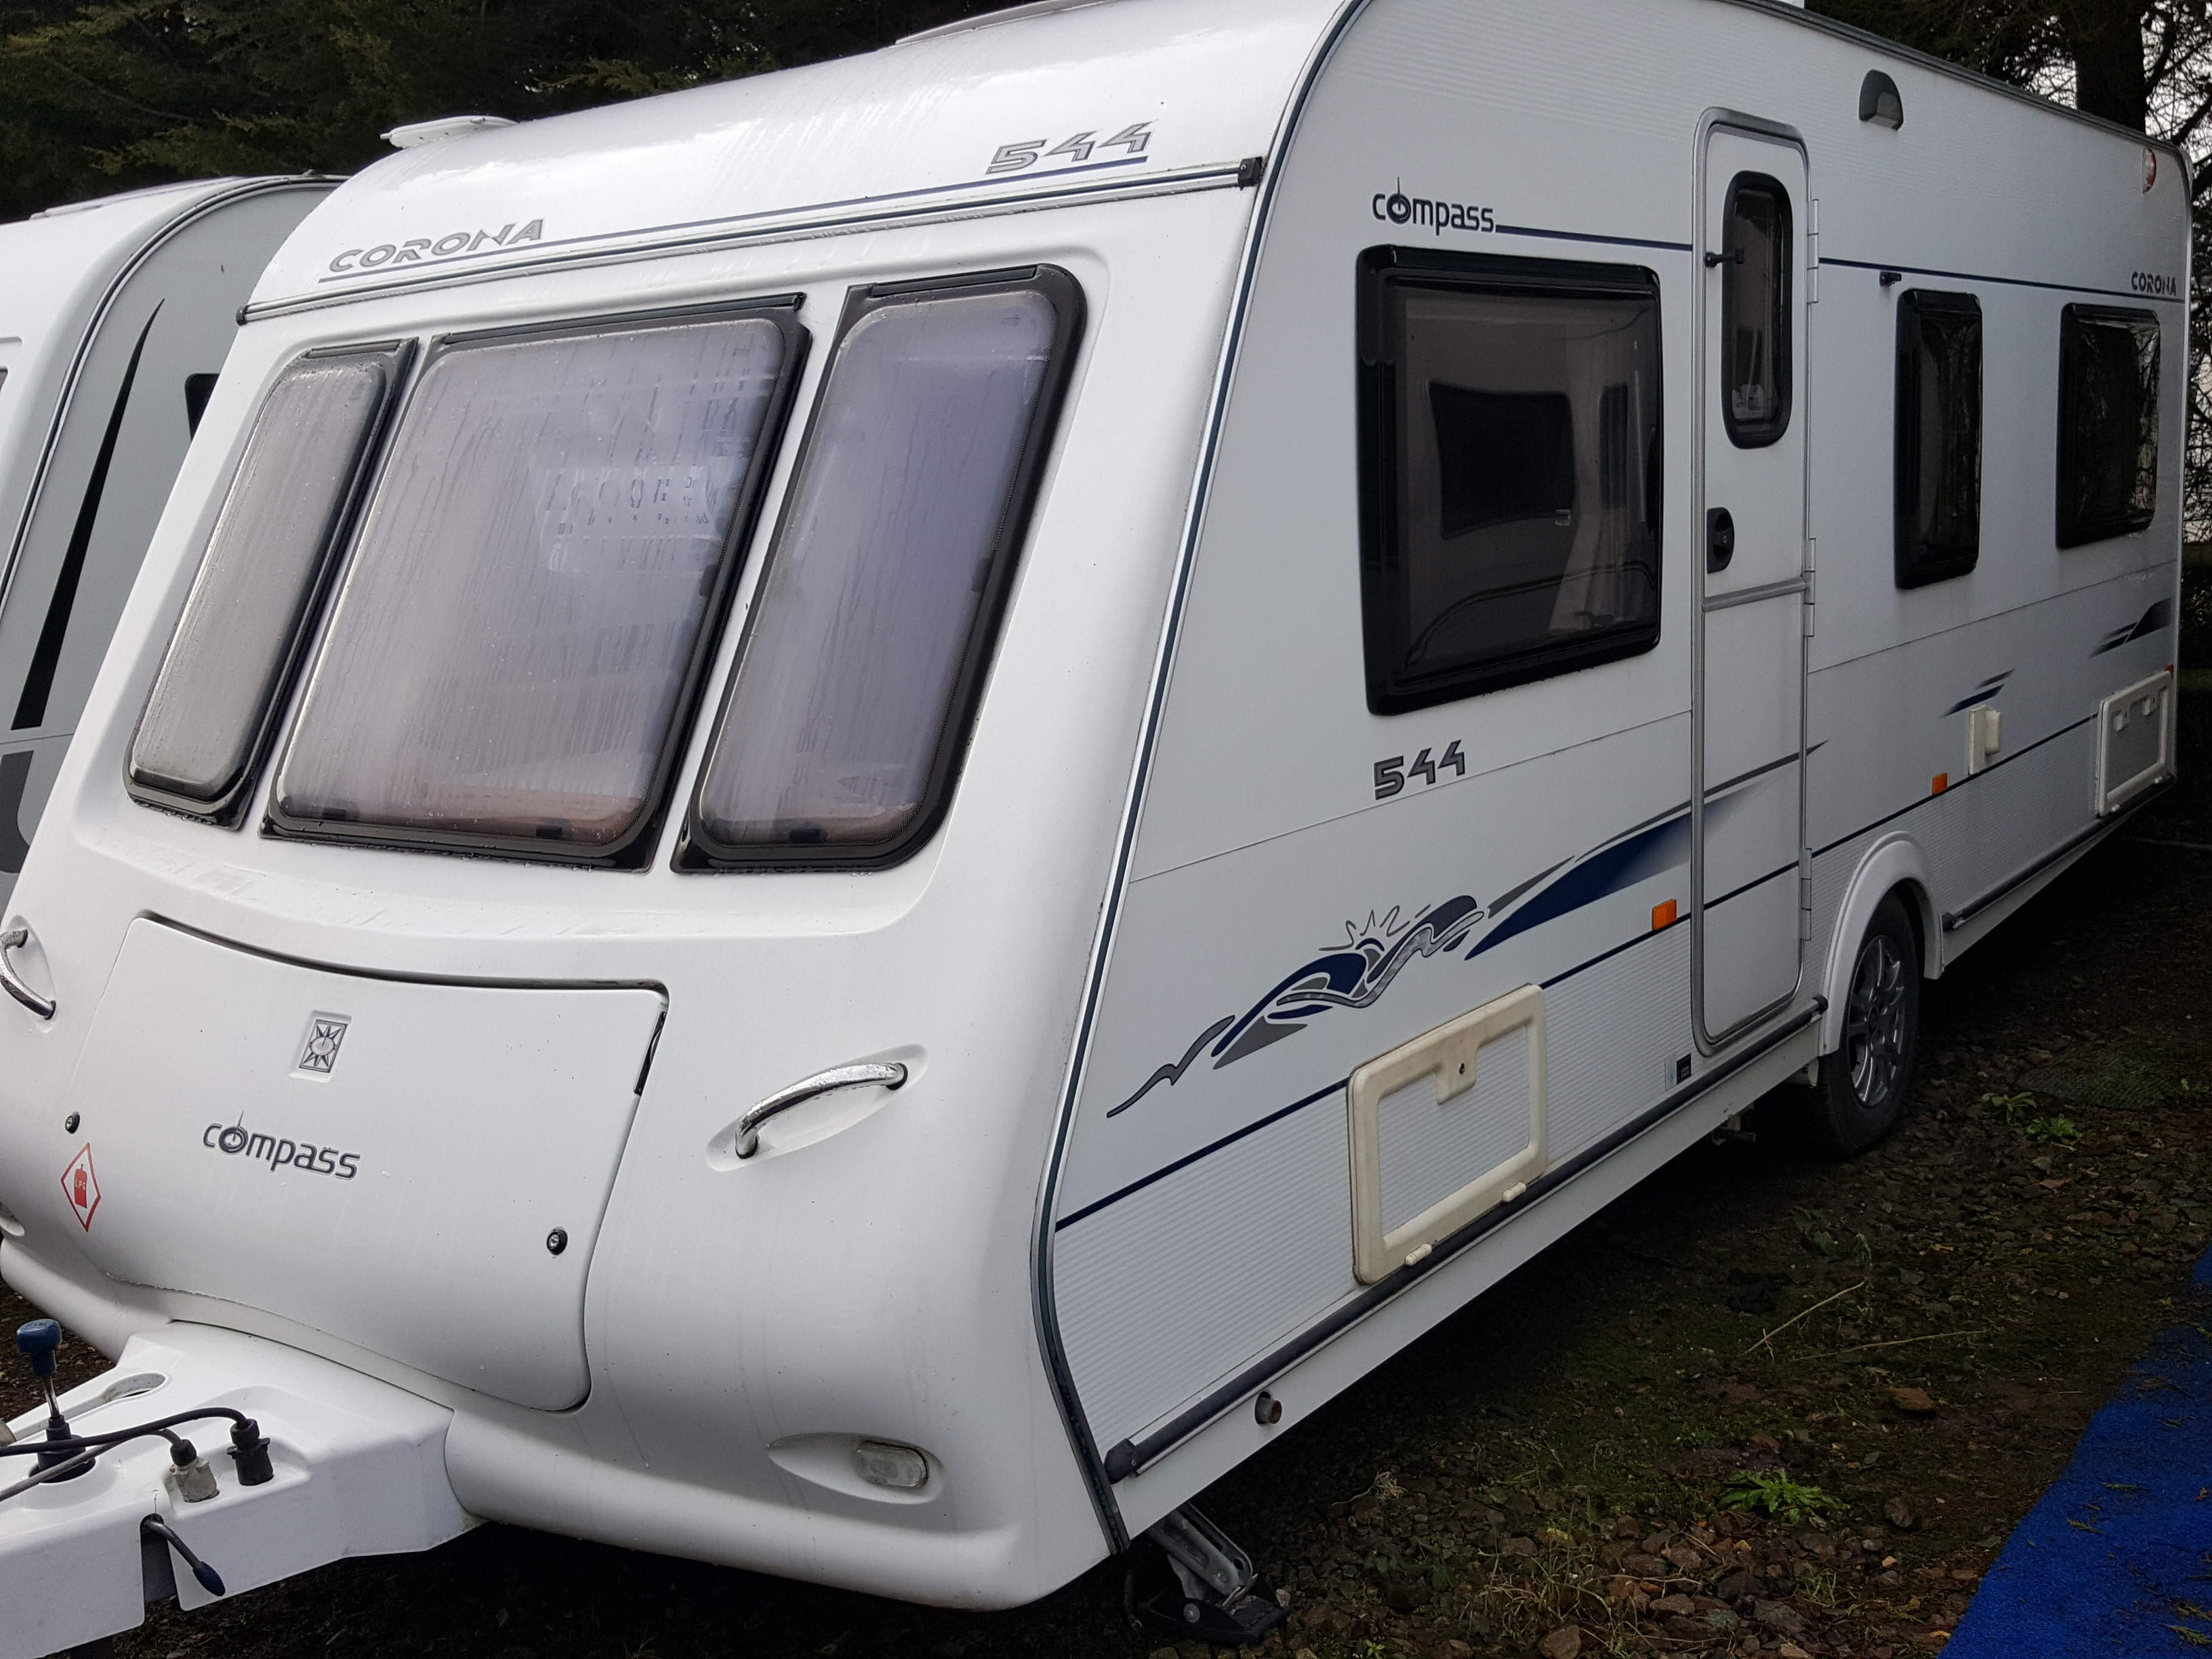 2007 Compass Corona 544 Fixed Bed, Motor Mover, Solar Panel